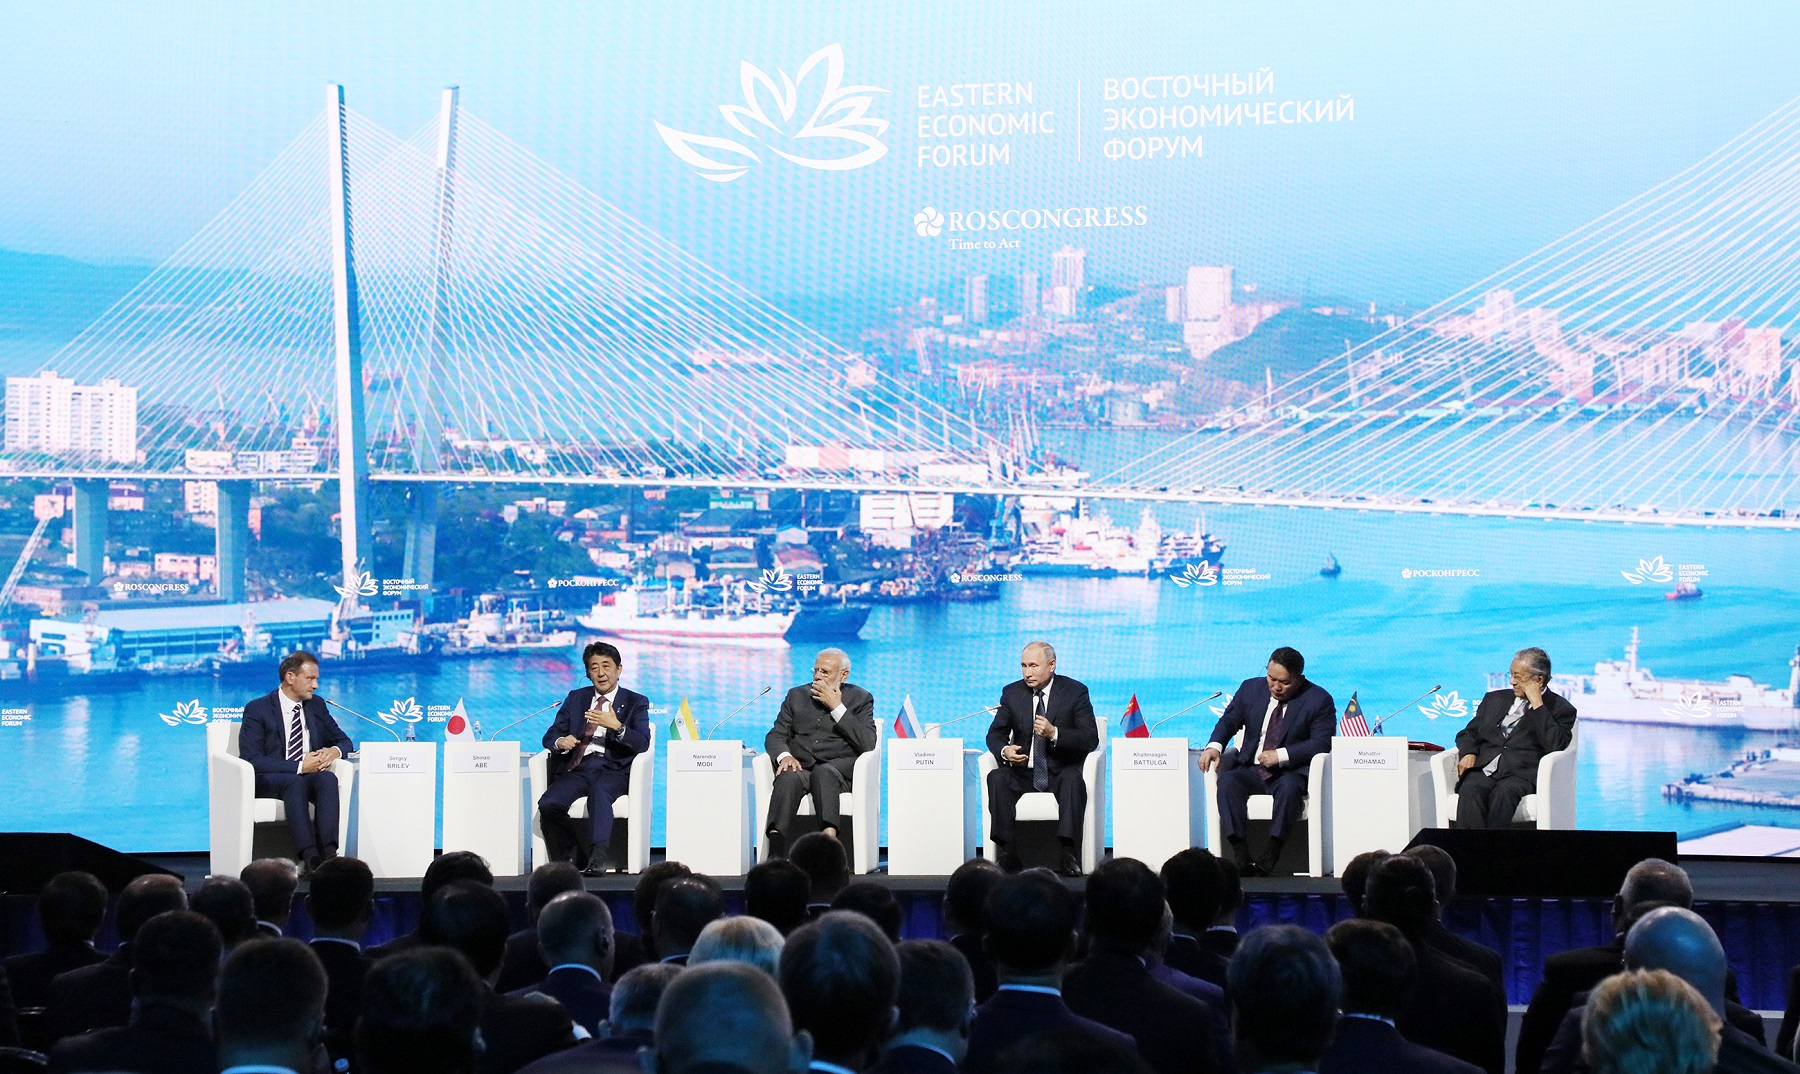 Photograph of the Plenary Session of the Eastern Economic Forum (1)